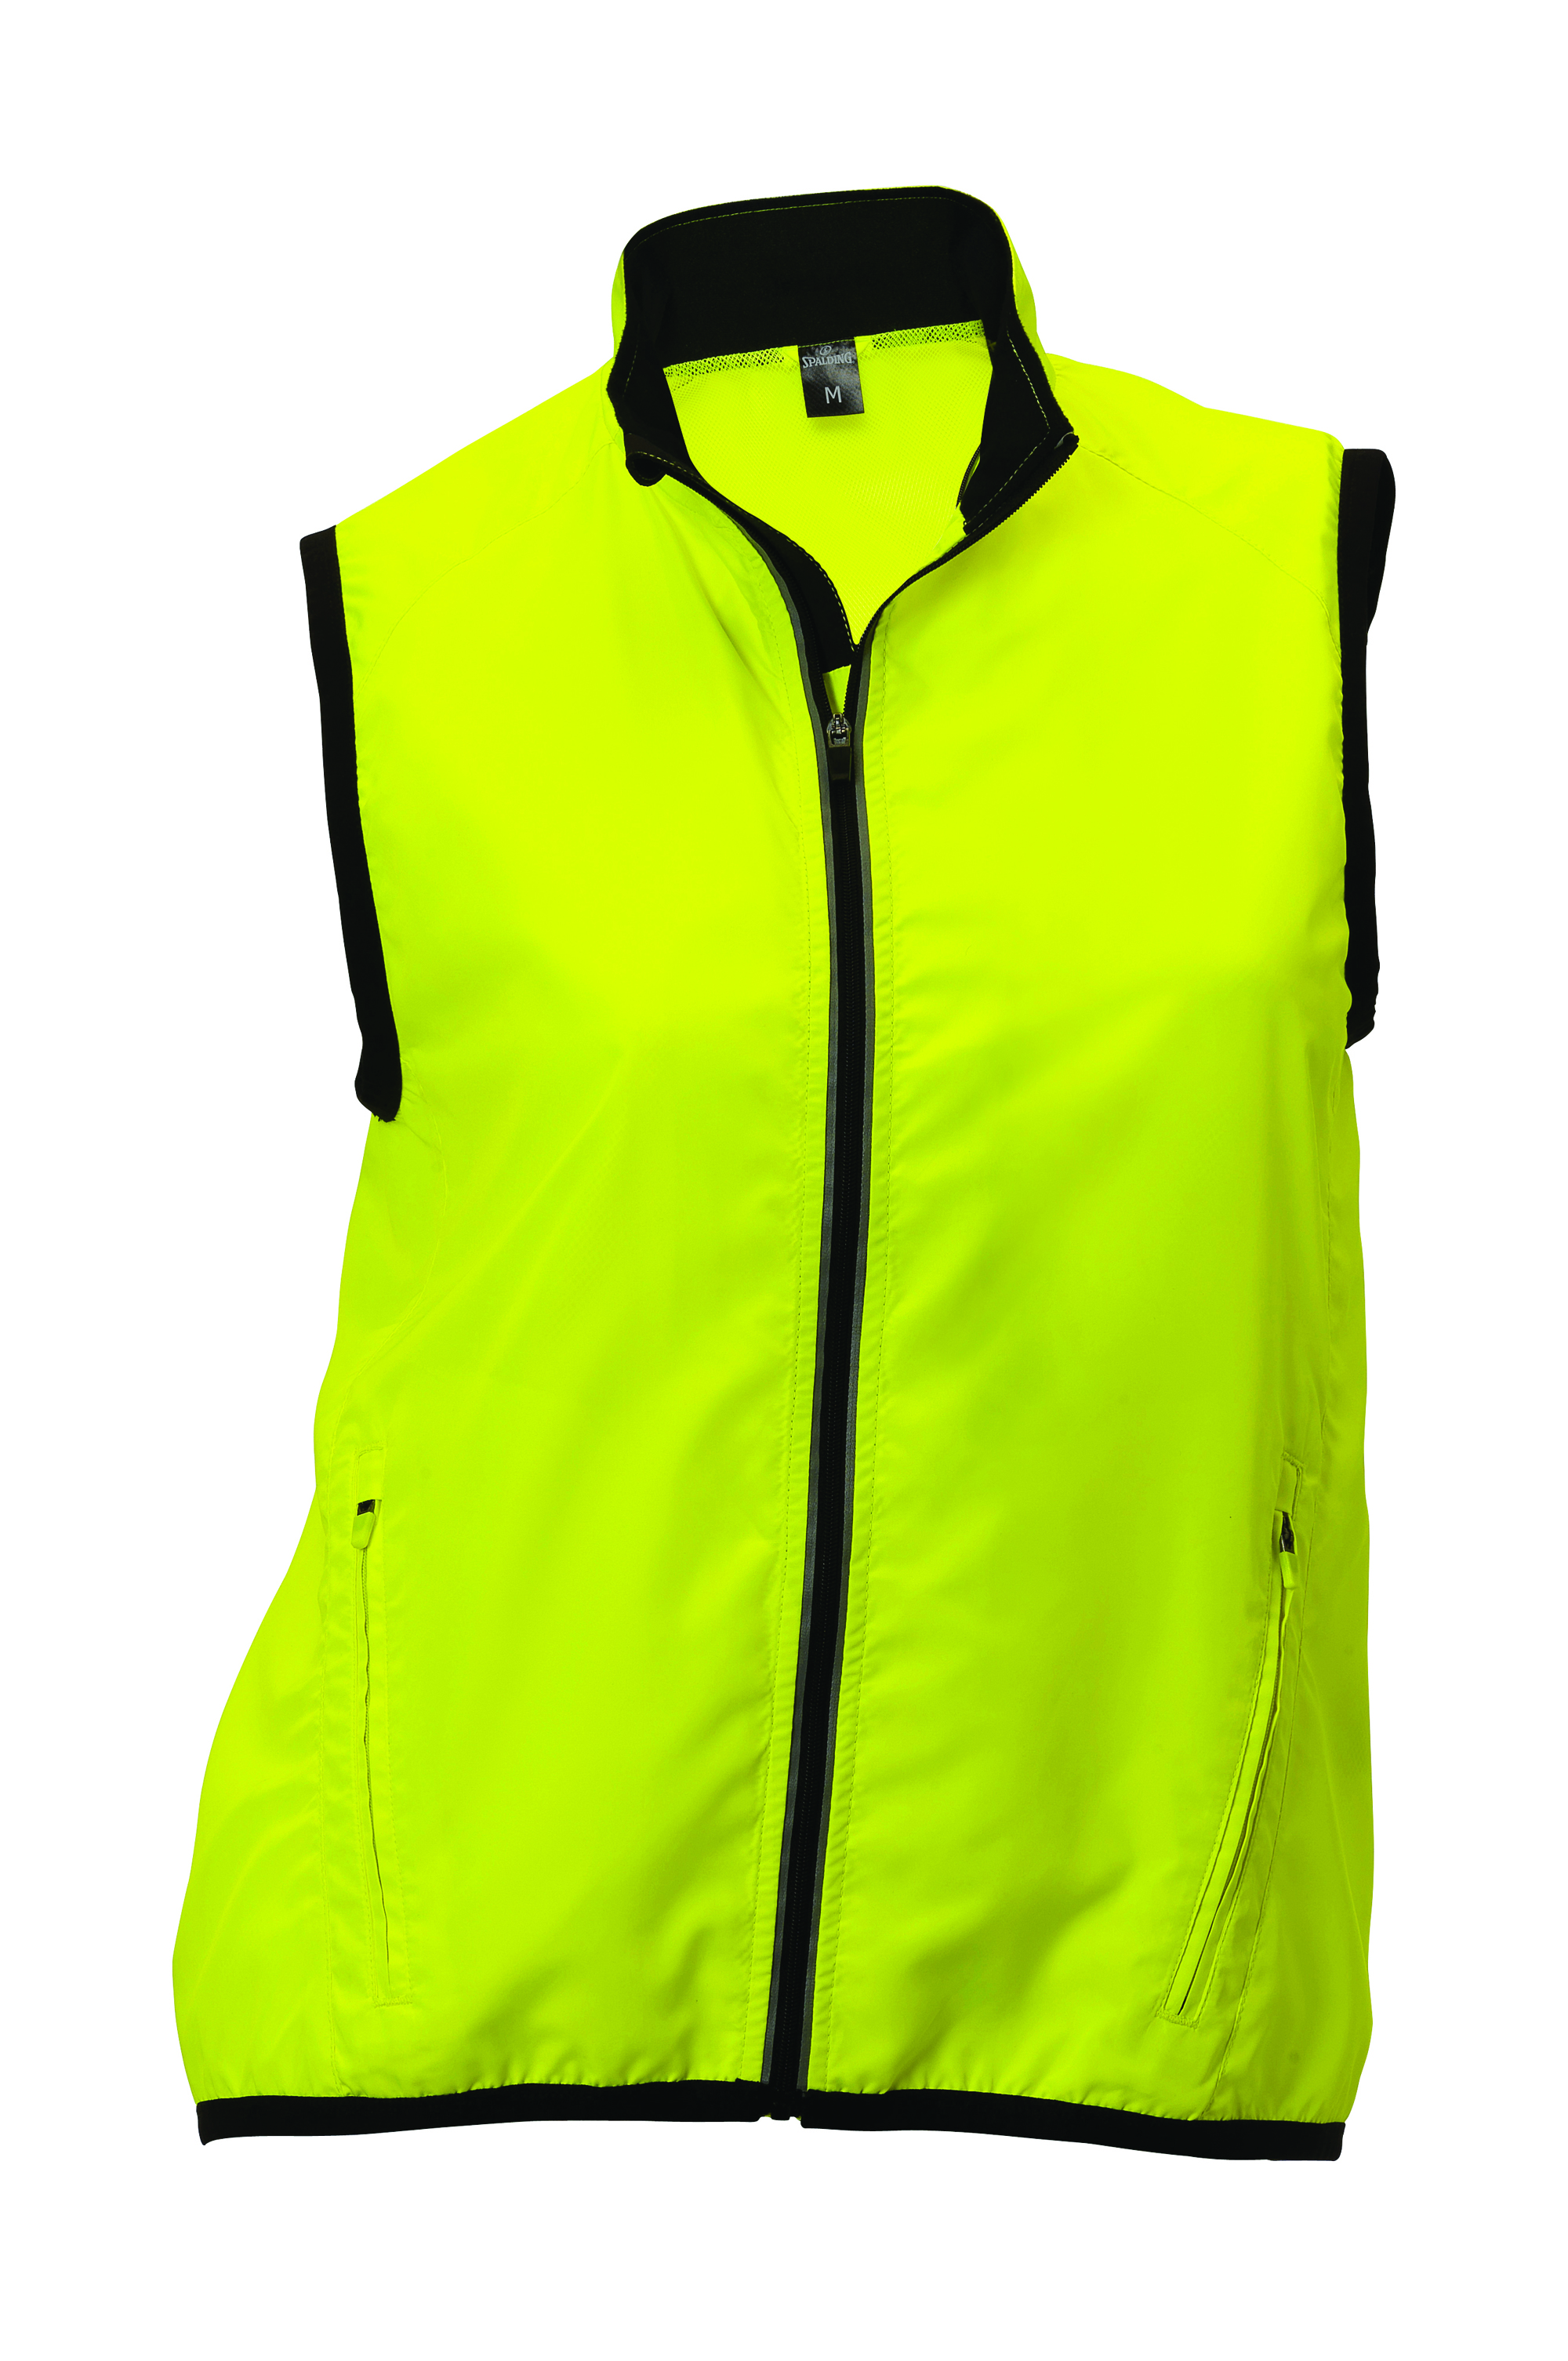 Exhilaration Gilet Women - Night Yellow - L